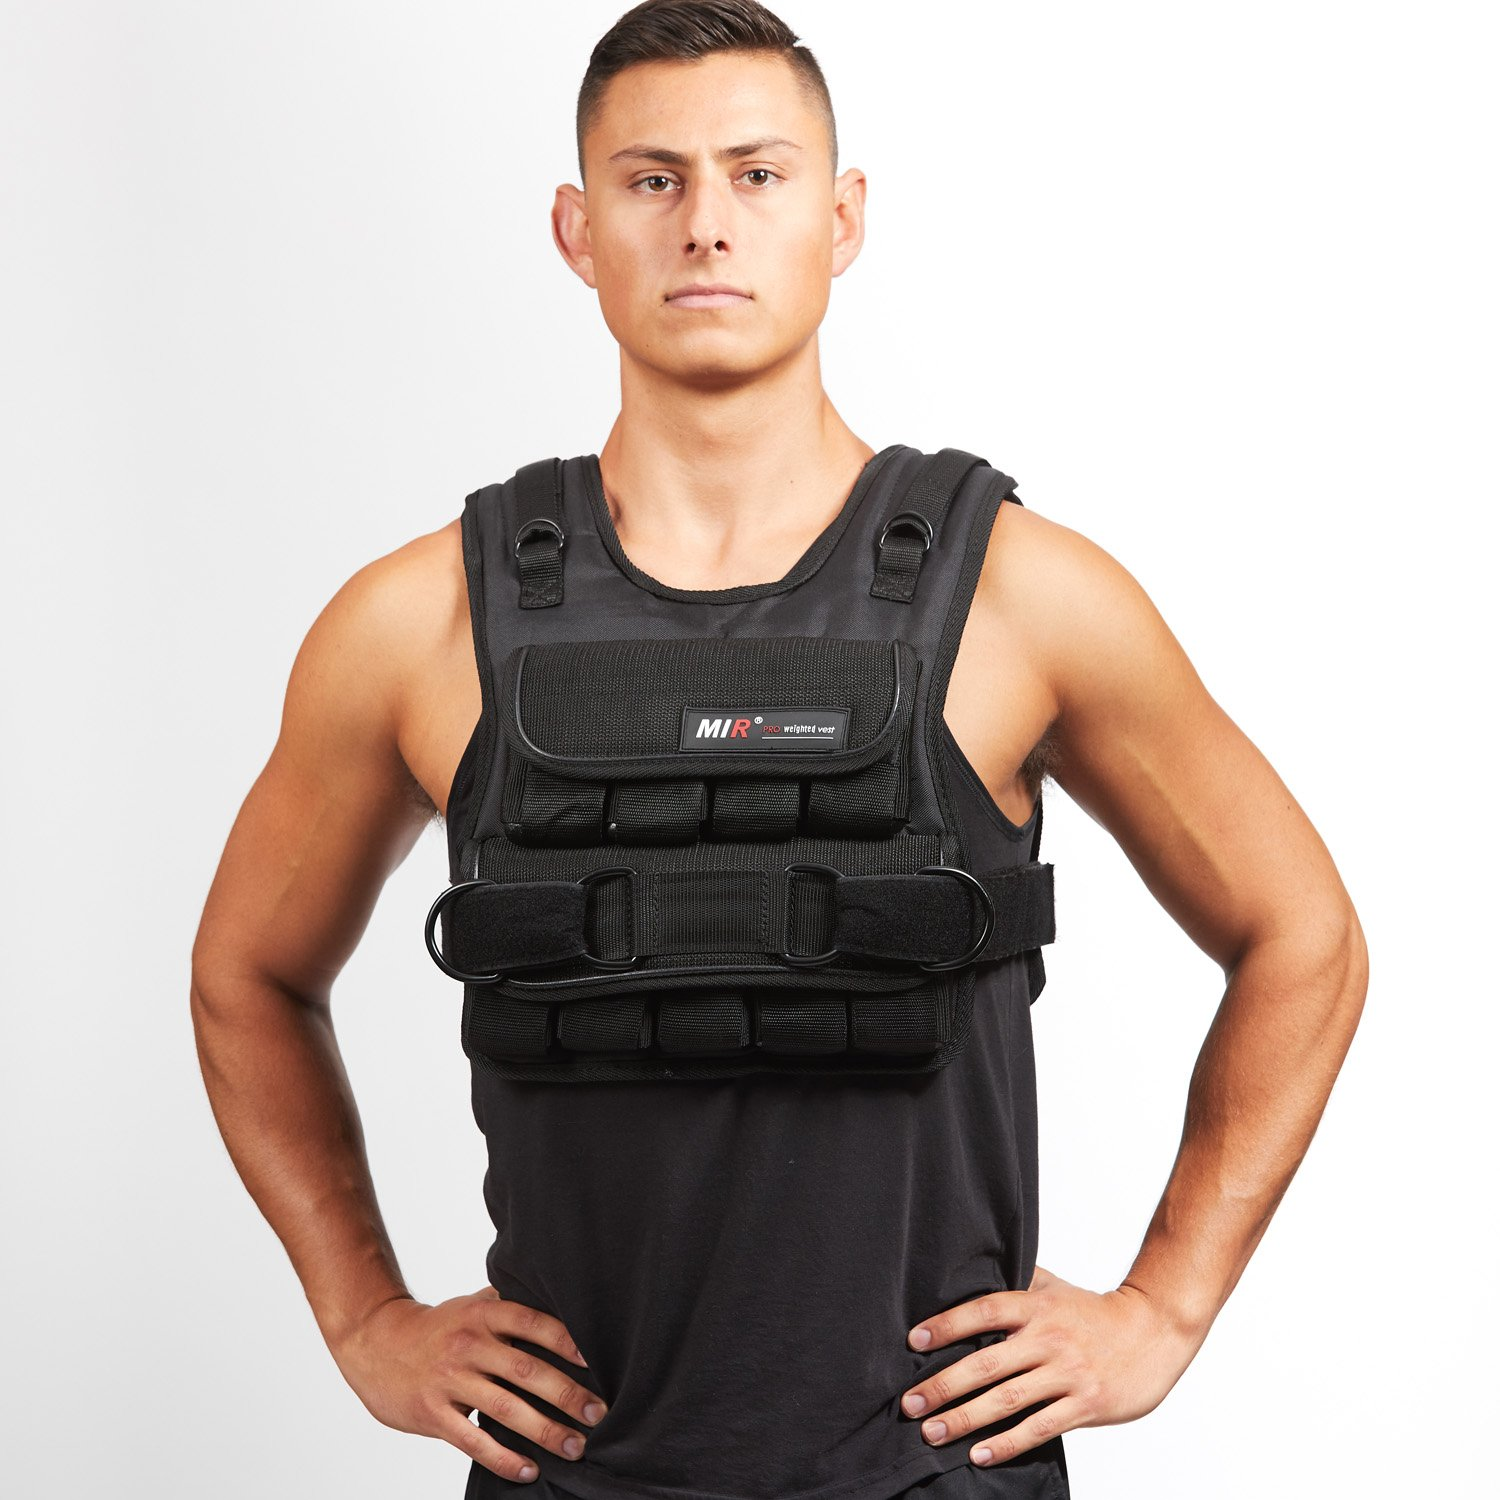 Mir 60LBS (SHORT STYLE) ADJUSTABLE WEIGHTED VEST